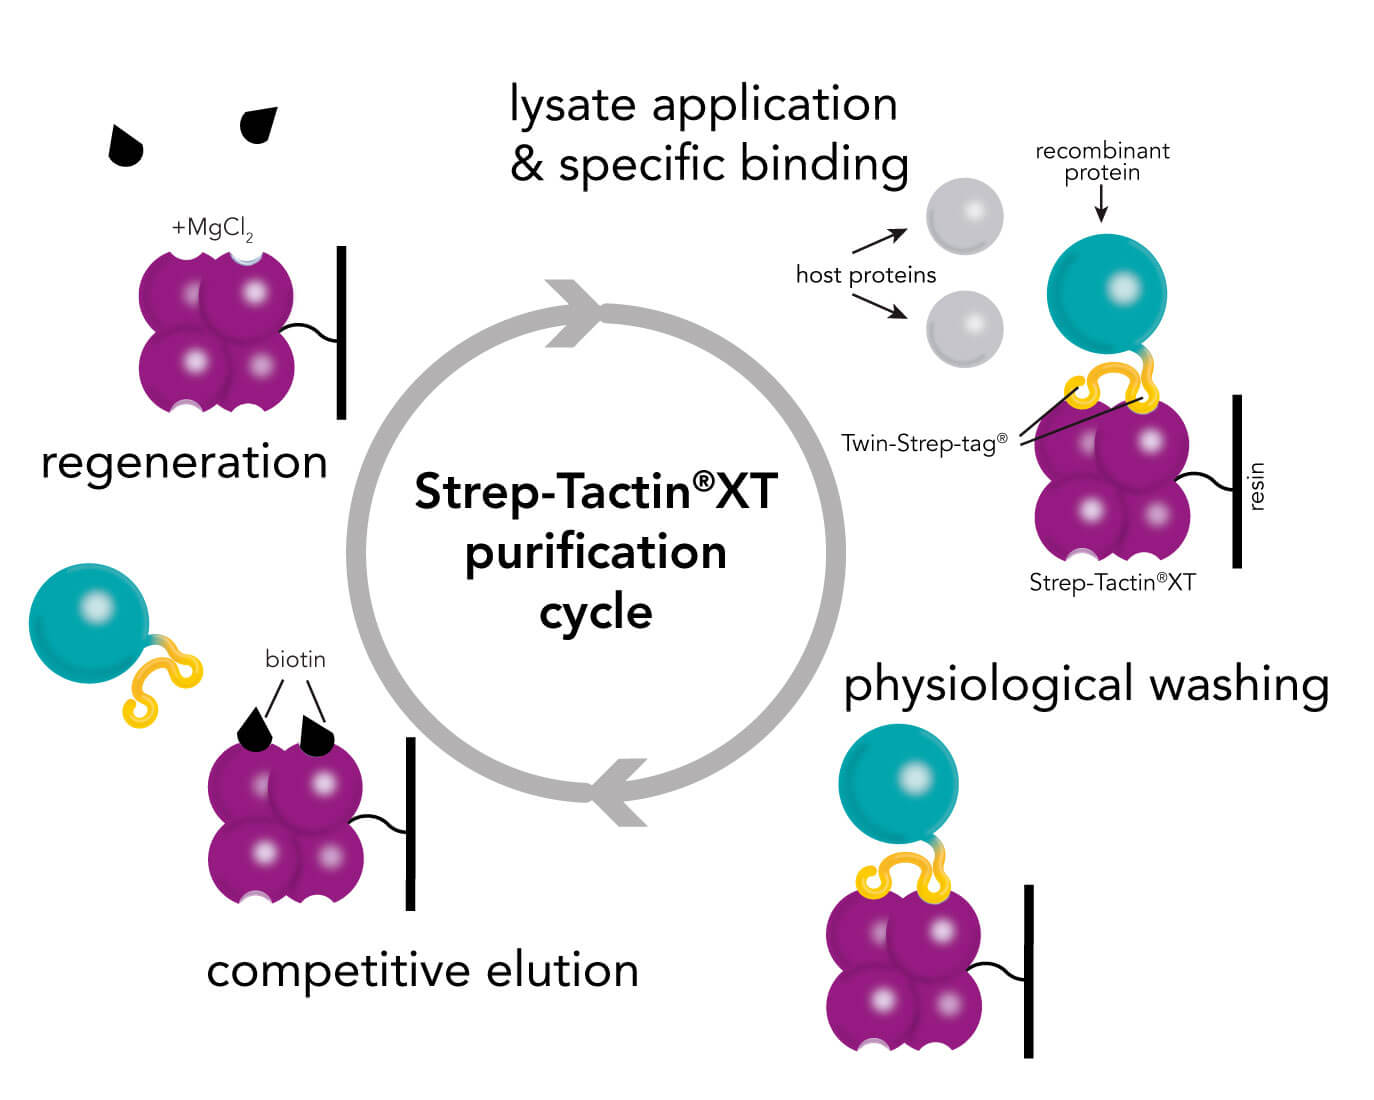 Strep-Tactin®XT protein purification cycle